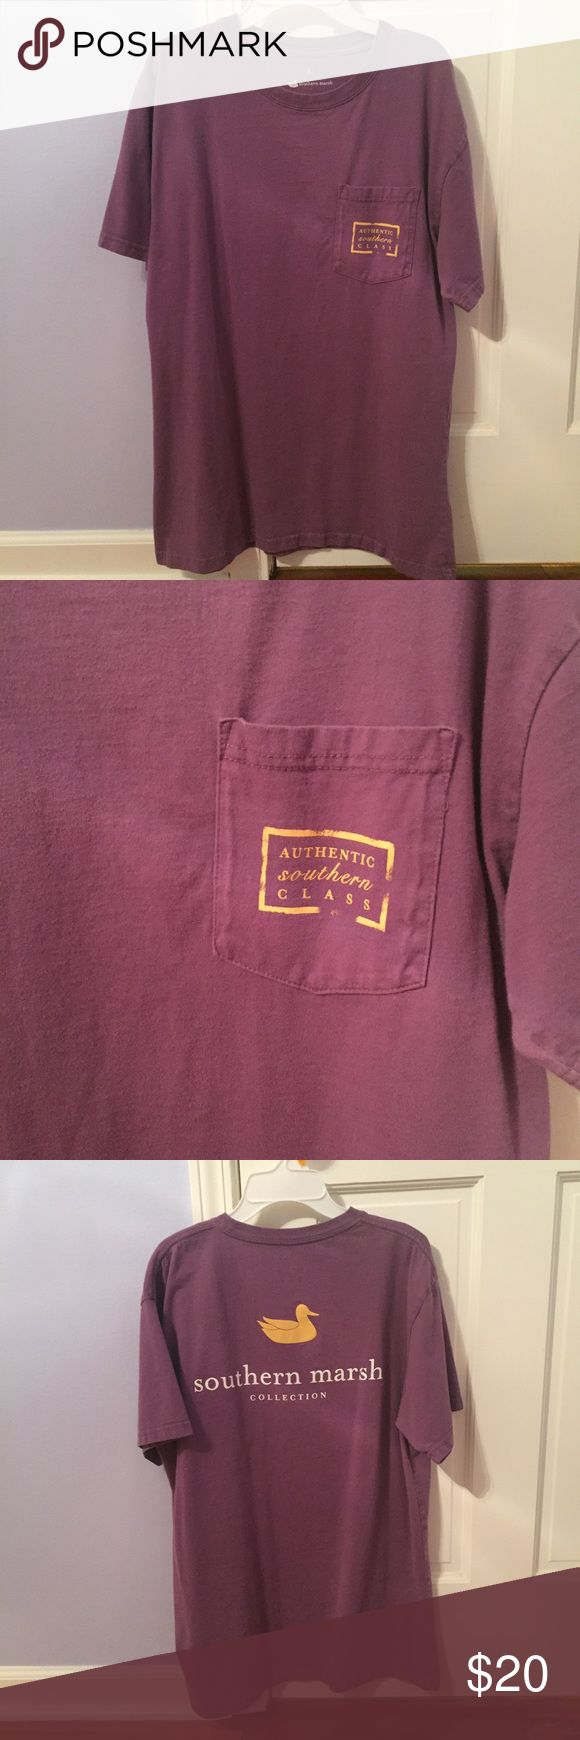 Southern Marsh Authentic Collegiate Tee Southern Marsh | Authentic Collegiate Tee | Men's Large | EUC | NO TRADES Southern Marsh Shirts Tees - Short Sleeve